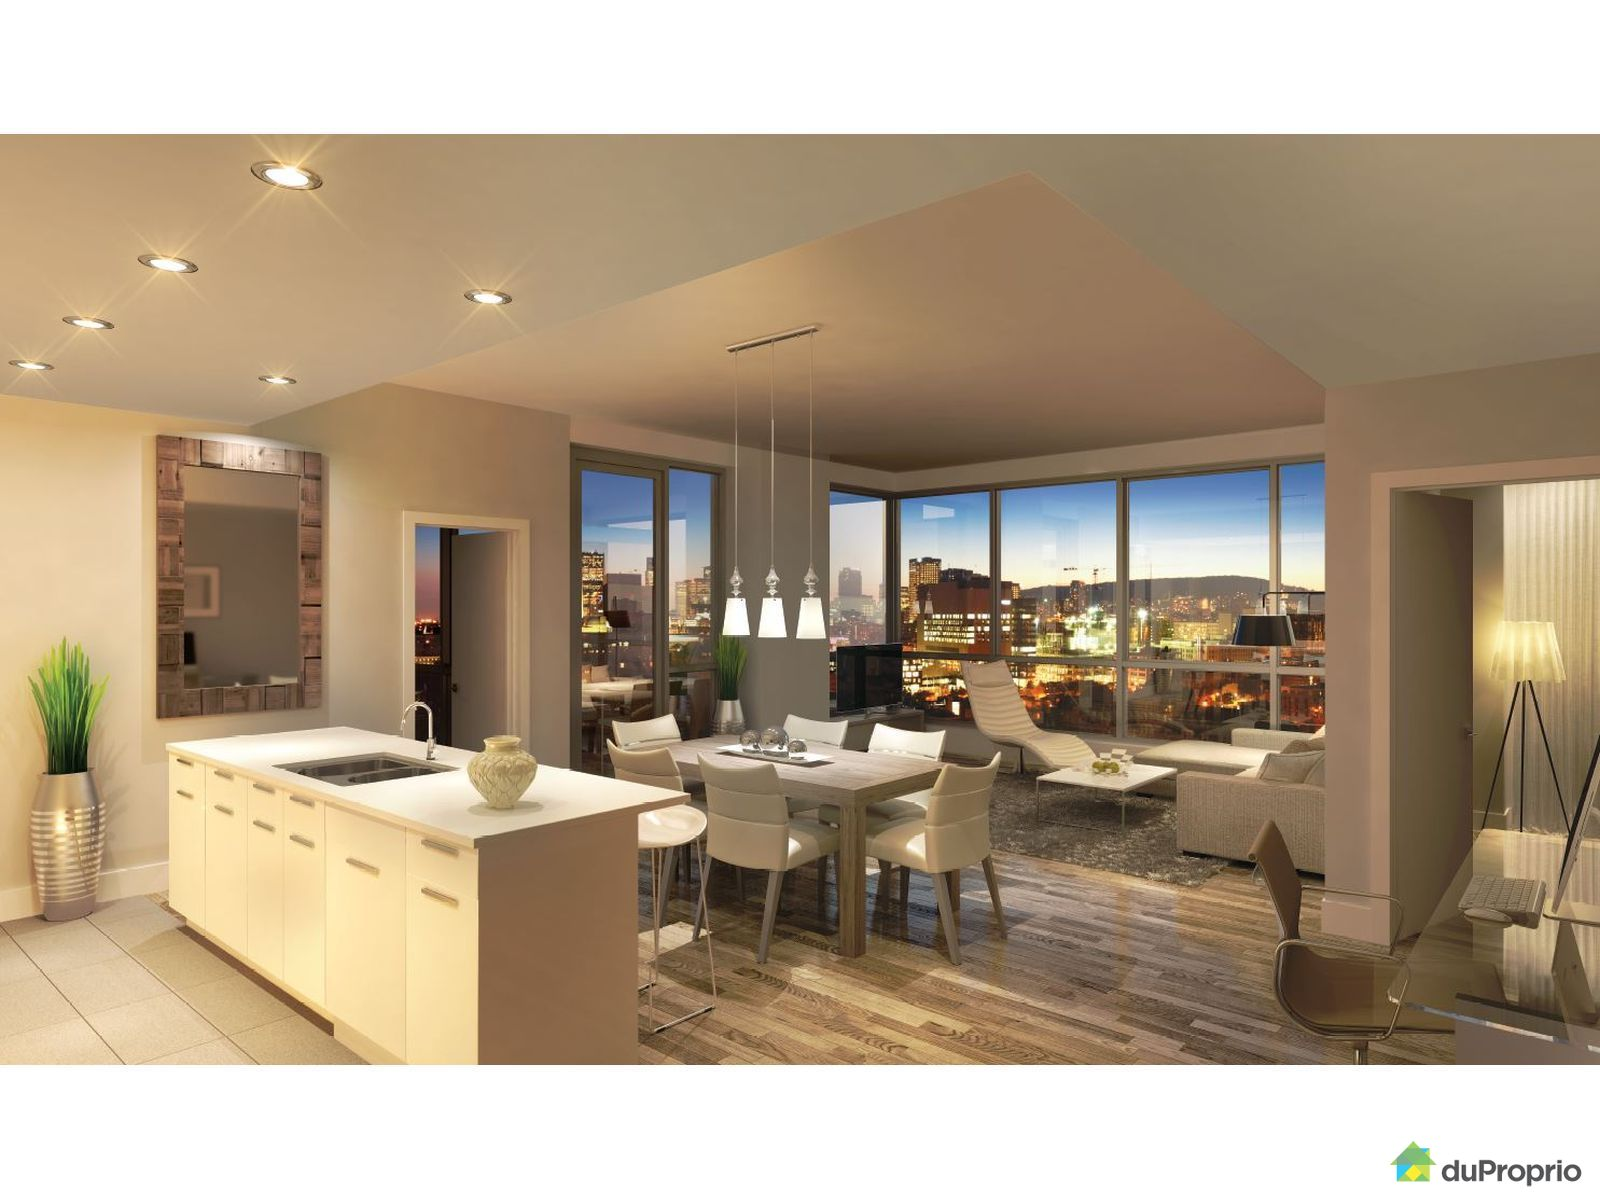 Newly built condo sold in montreal duproprio 594613 for La downtown condo for sale